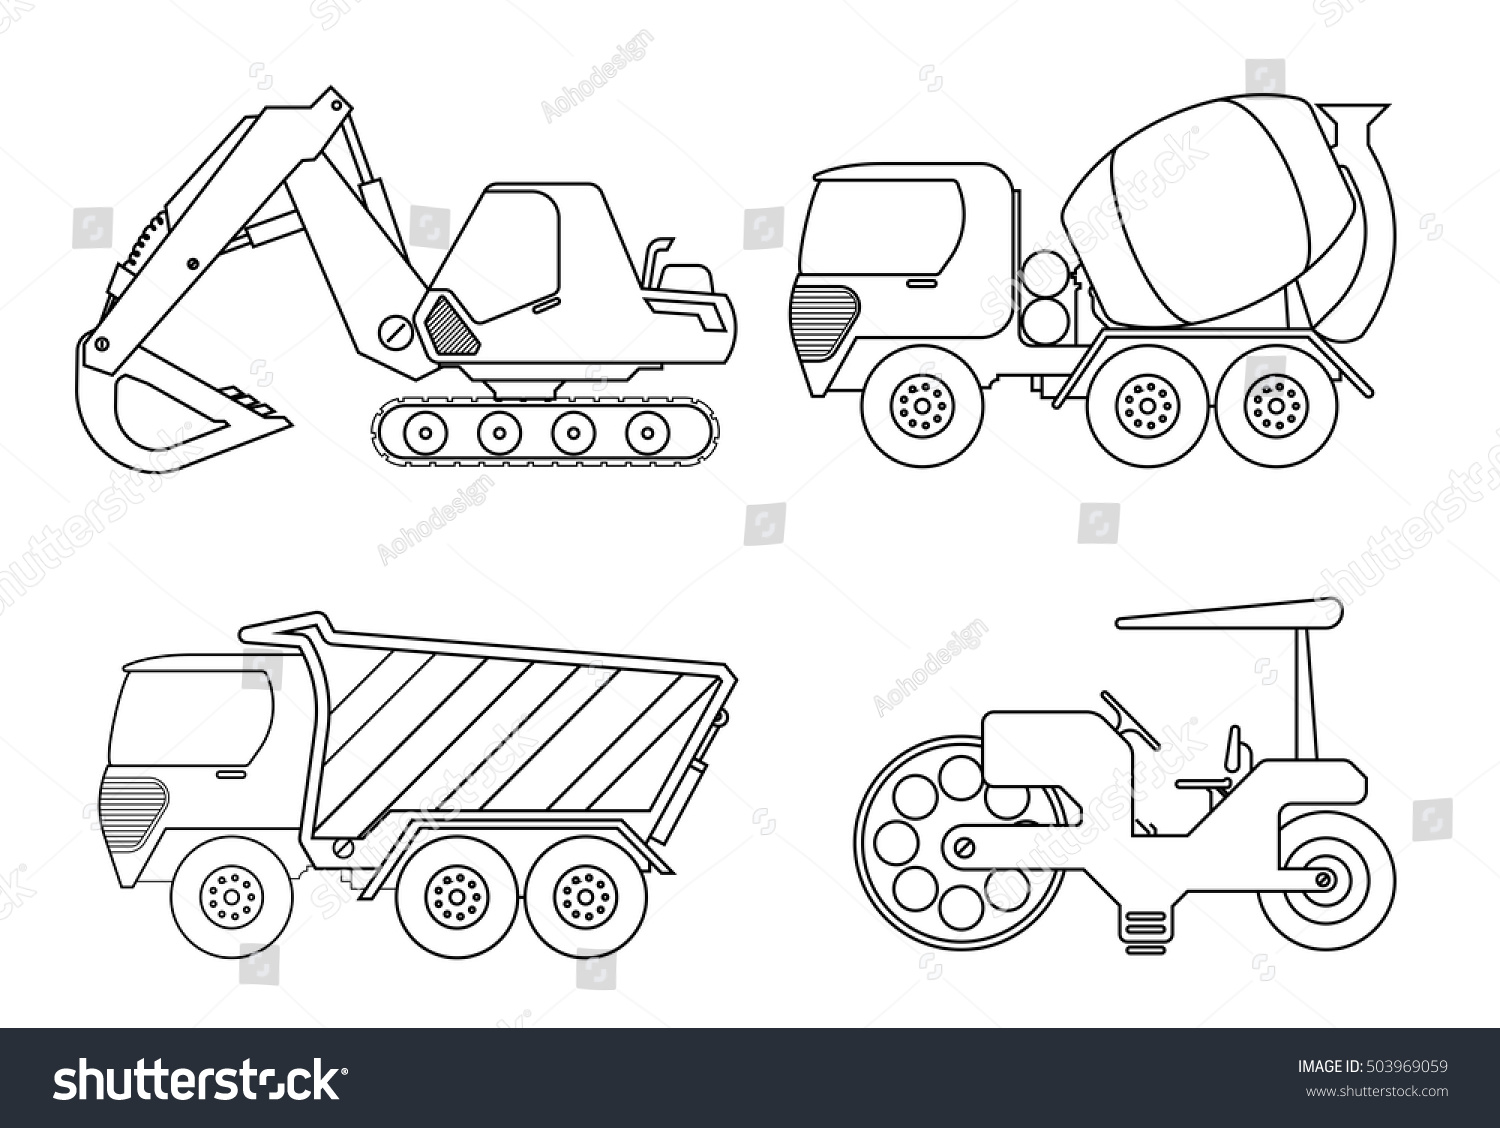 Truck Coloring Book For Kids Vector Illustration Of Crane Car Cement Truckrollor